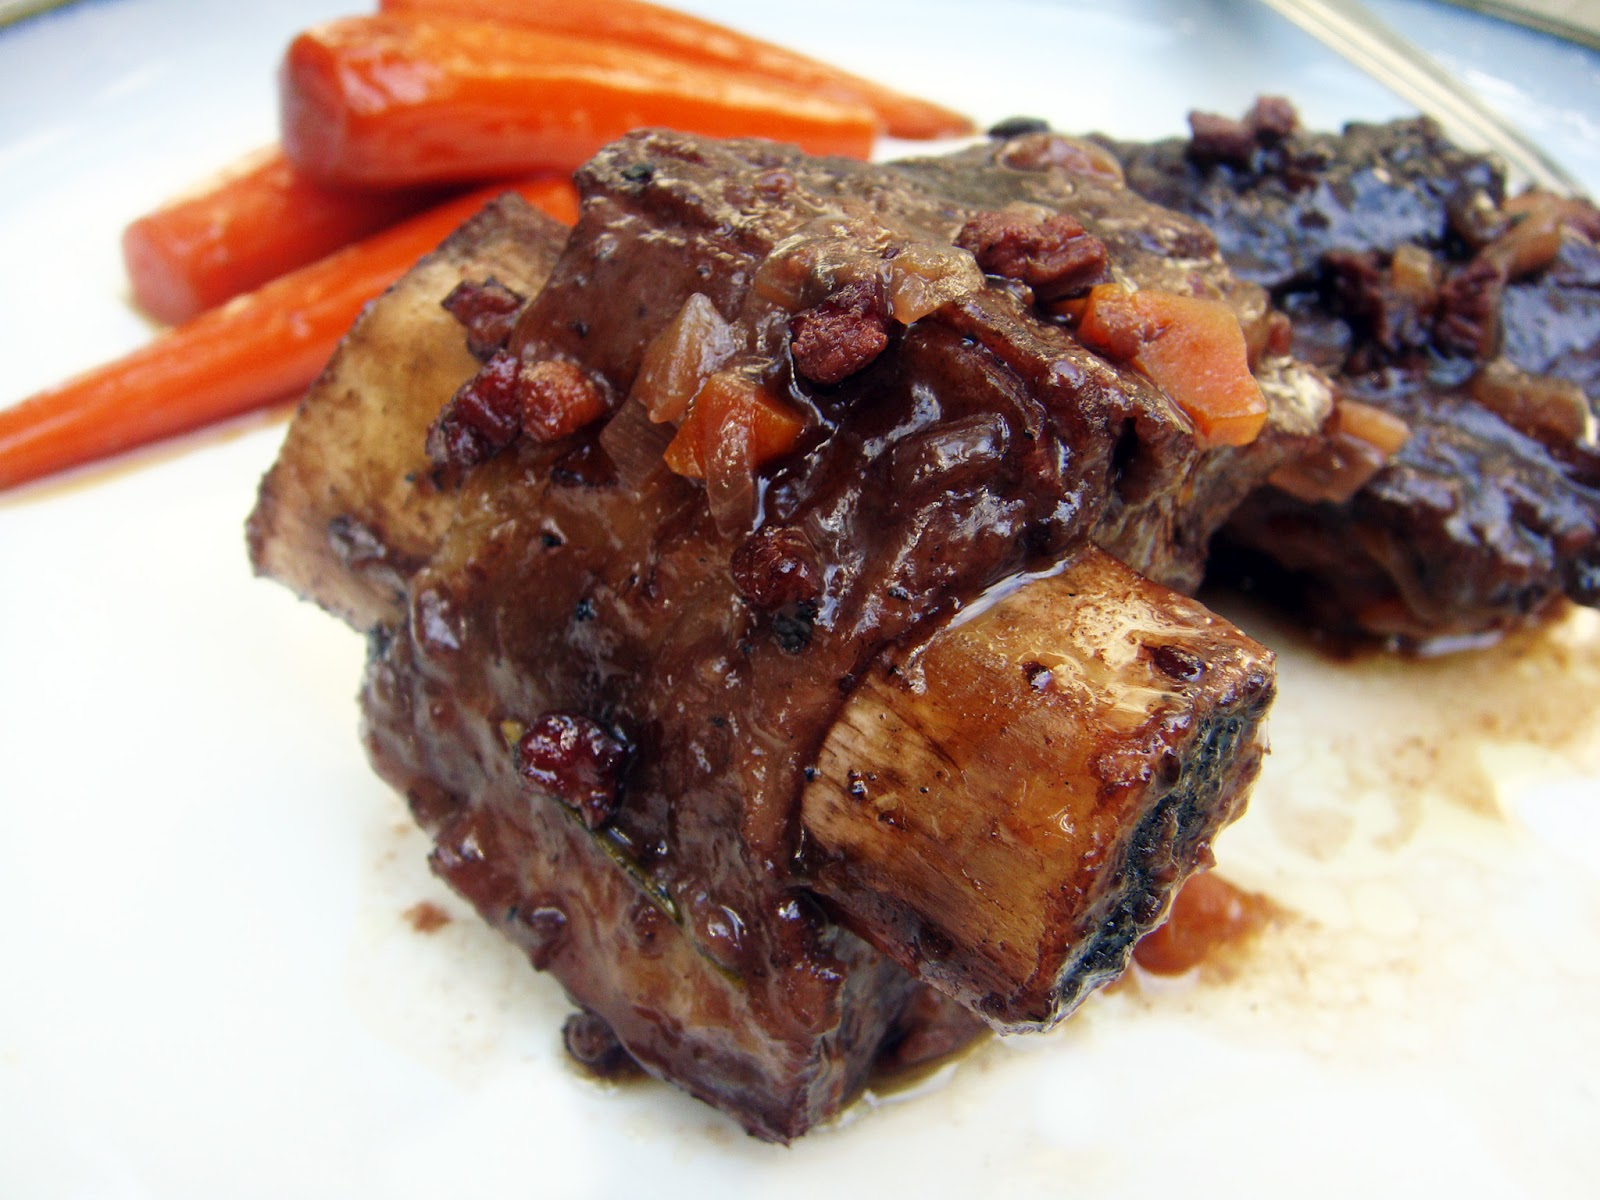 The Dinner Club: Braised Short Ribs